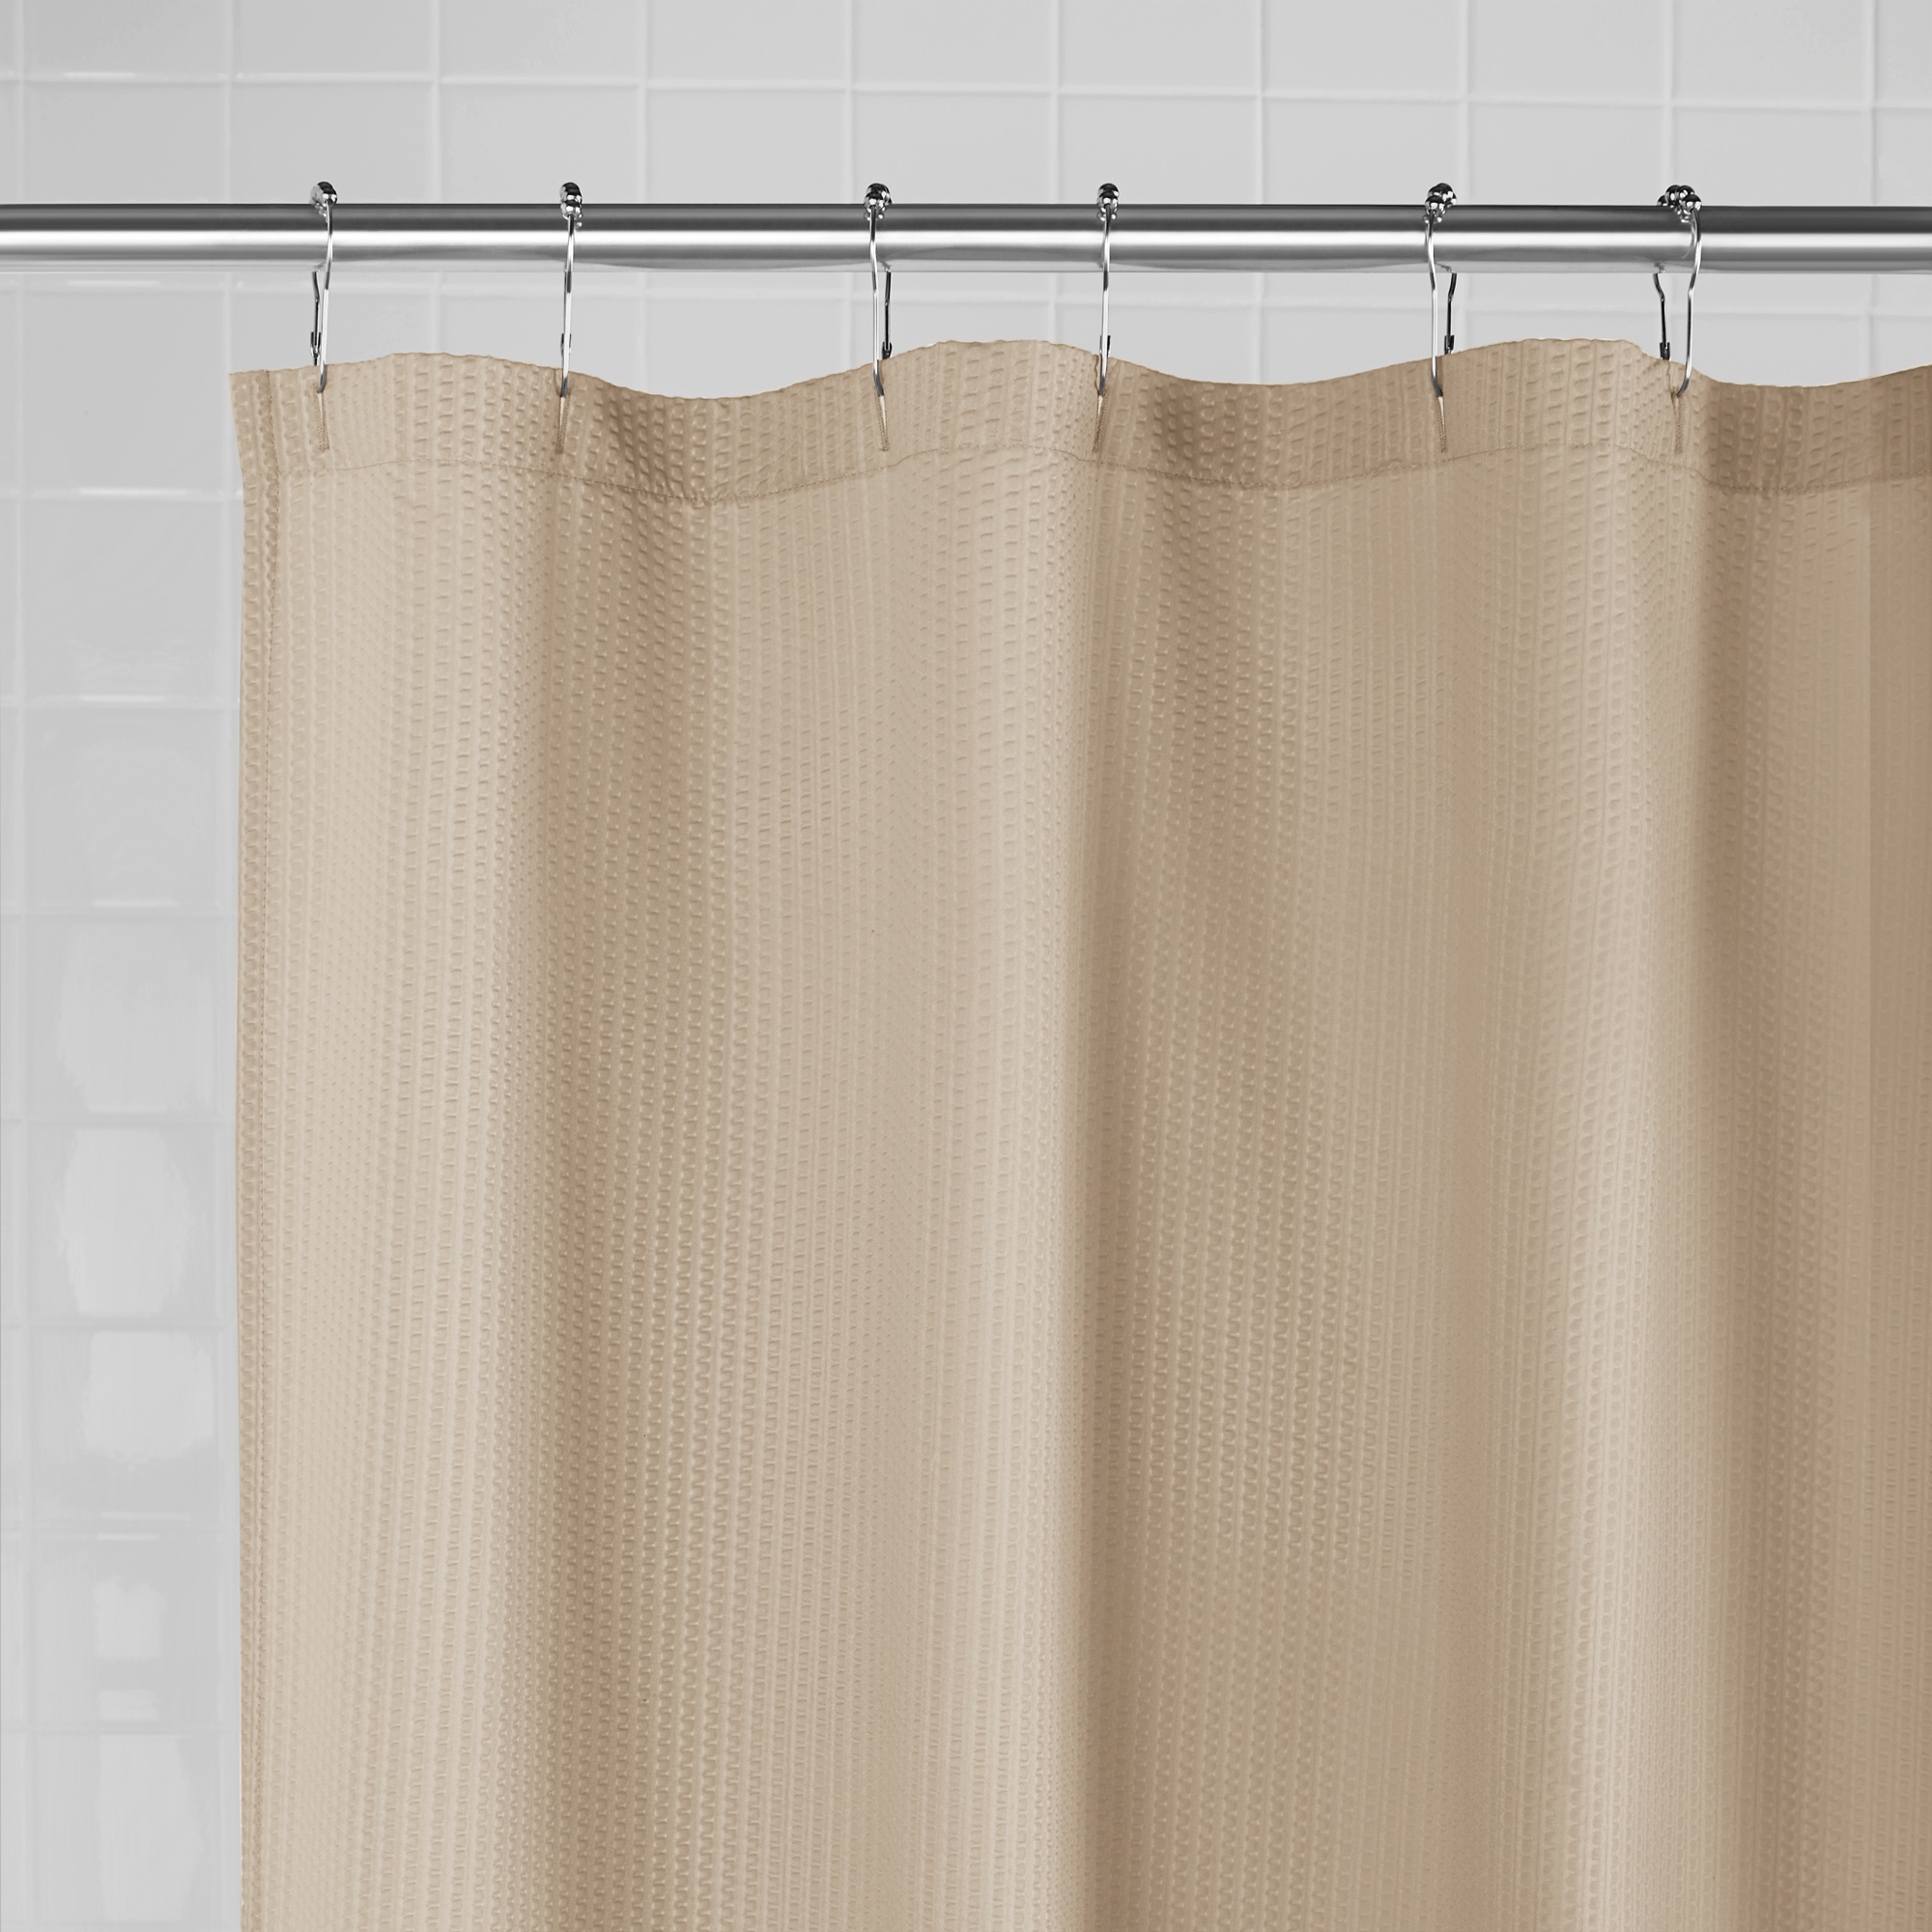 Rv Shower Curtain 47 X 64 Mainstays Embossed Fabric Shower Liner 1 Each